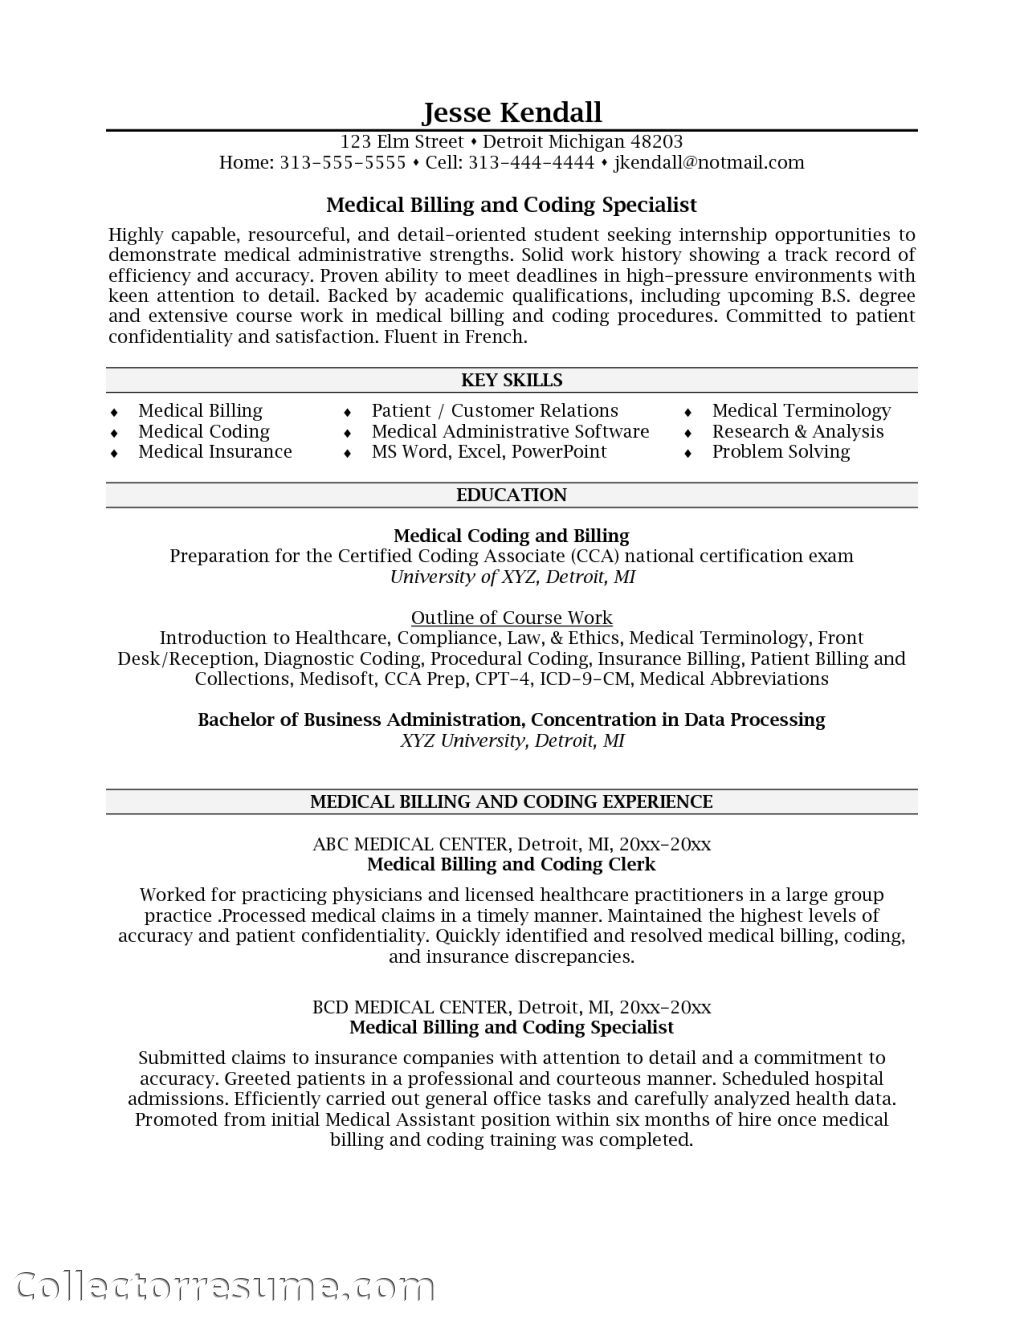 Medical Coding Resume Samples Specialist Health Insurance  Health  Pinterest  Health Insurance